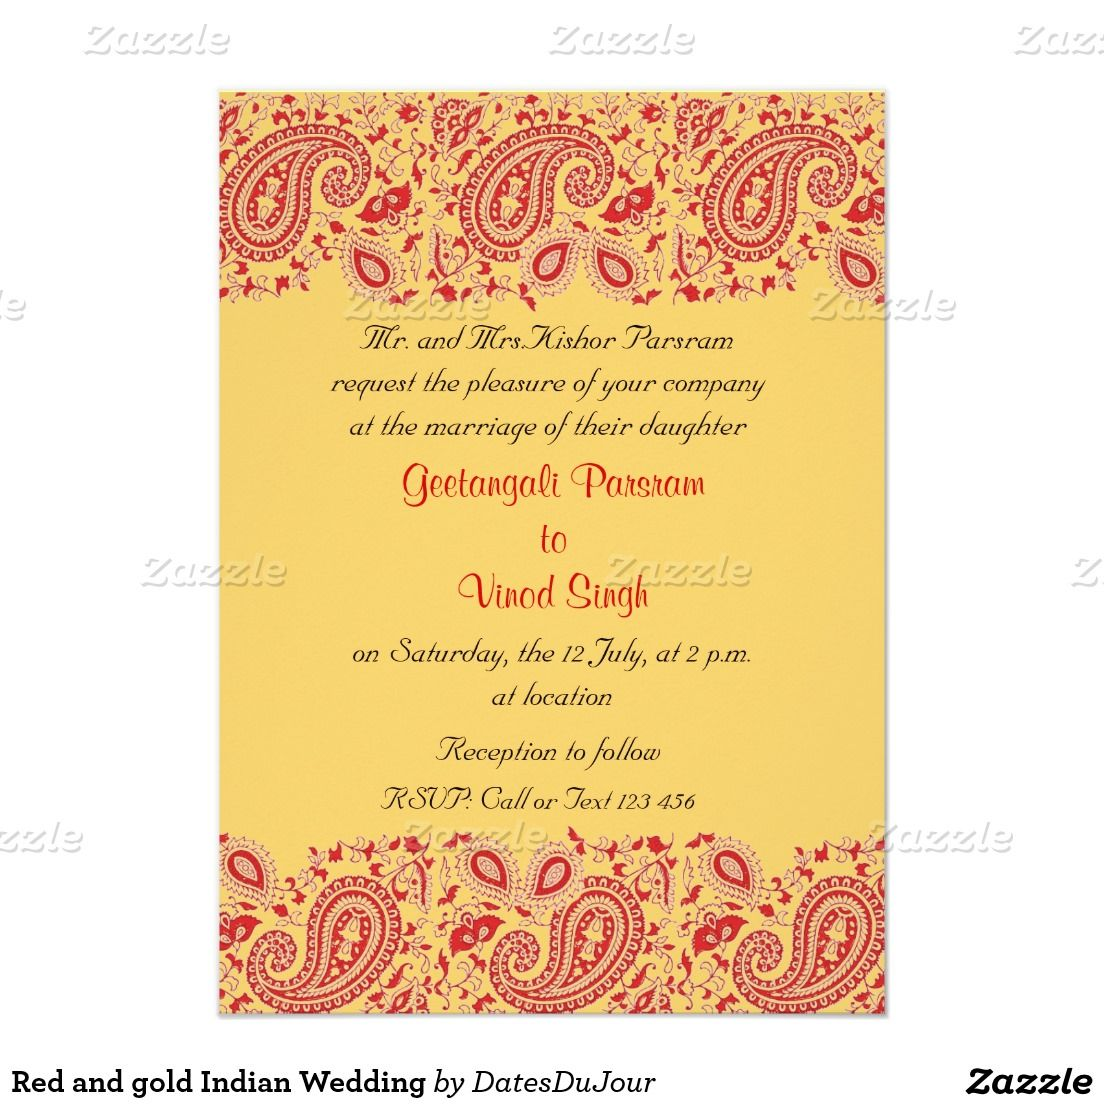 Red And Gold Indian Wedding Card Indian Wedding Cards Indian Wedding Invitations Wedding Invitations